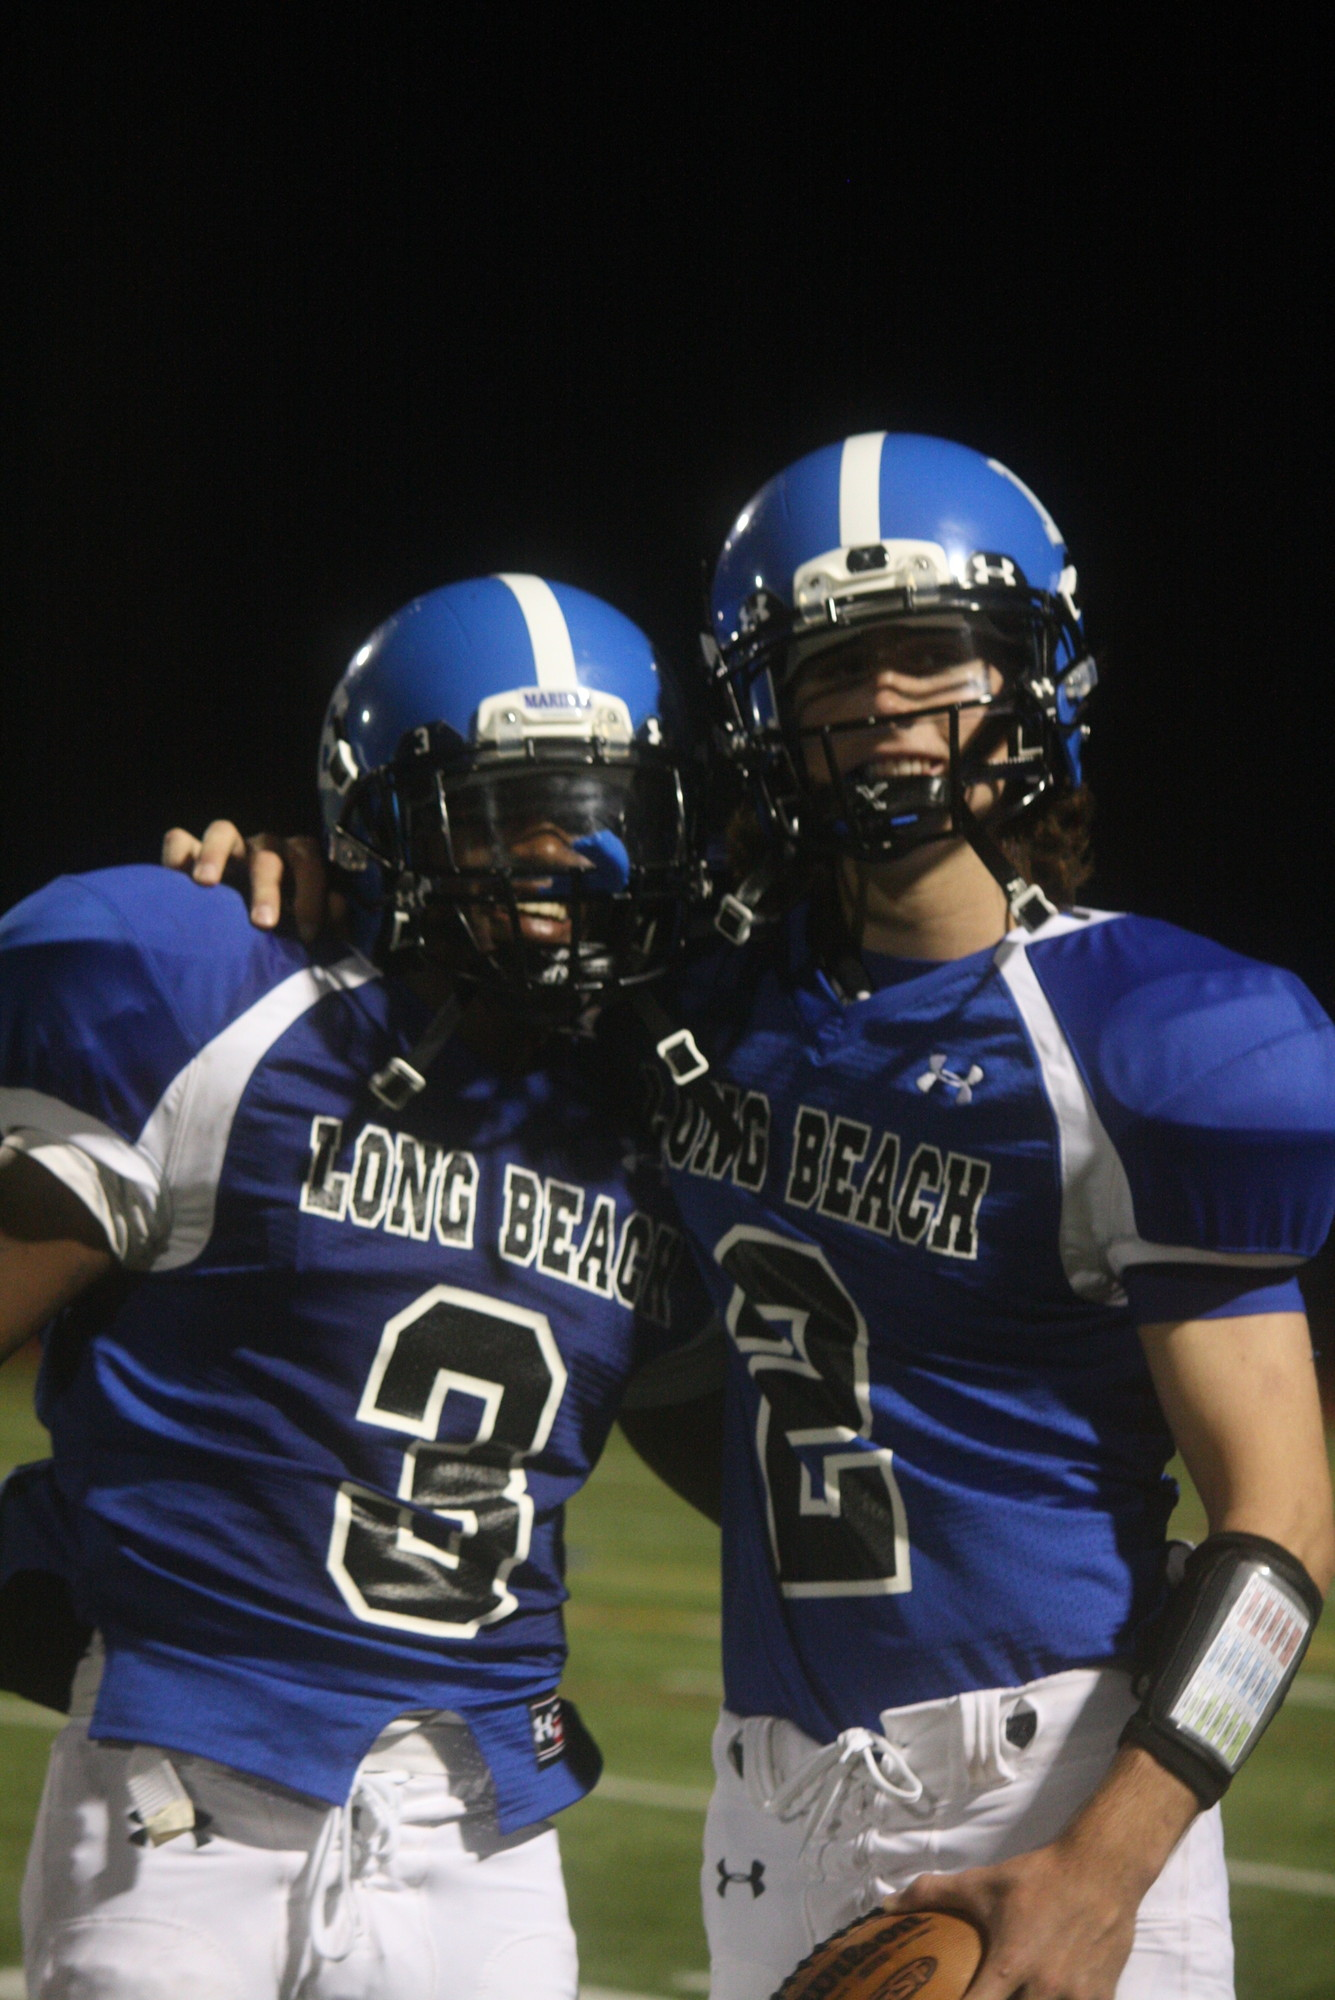 Running back Chris Parler, left, and quarterback Liam Rafferty helped the Marines rack up an impressive win against Herricks at the Long Beach High School Homecoming game.